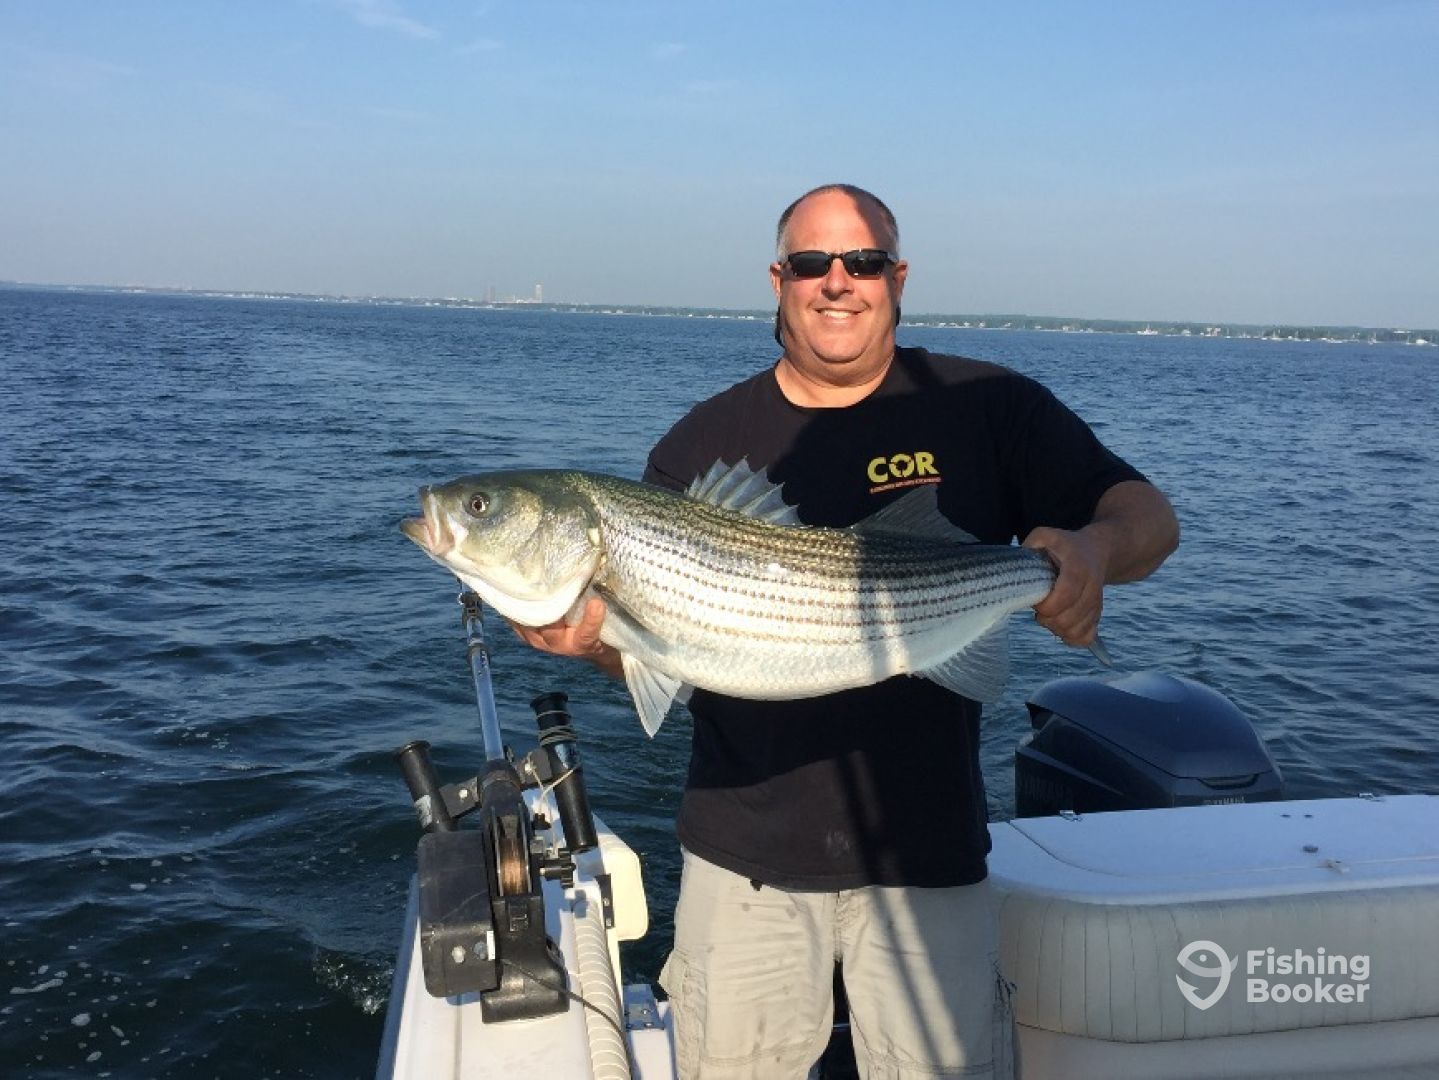 Road work ahead fishing charters stamford ct fishingbooker for Fishing trips in ct